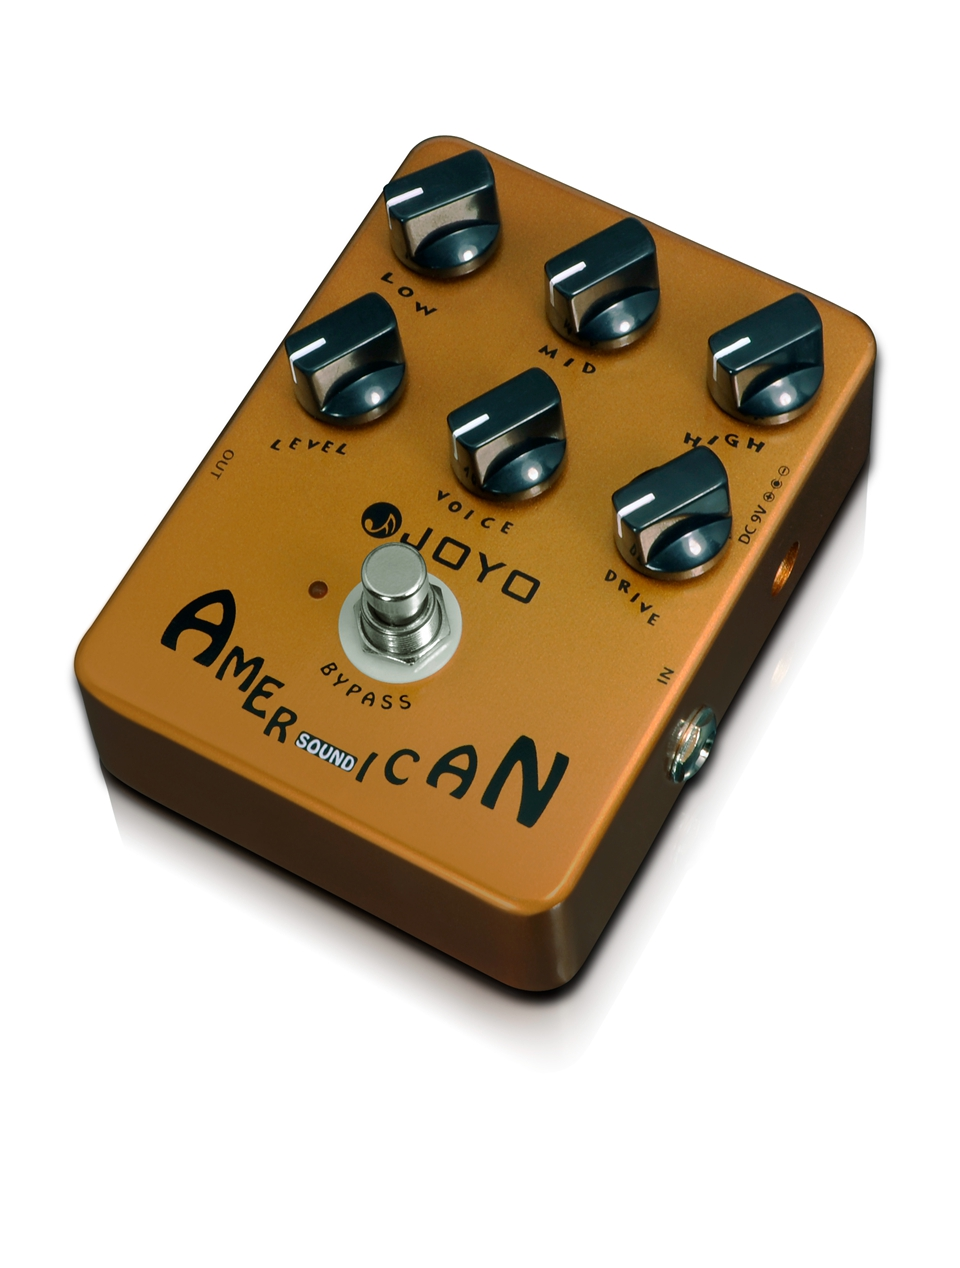 JOYO American Sound Guitar Effect Pedal Reproduces The Sound&Mooer Performs Great From Clean Driven JF-14